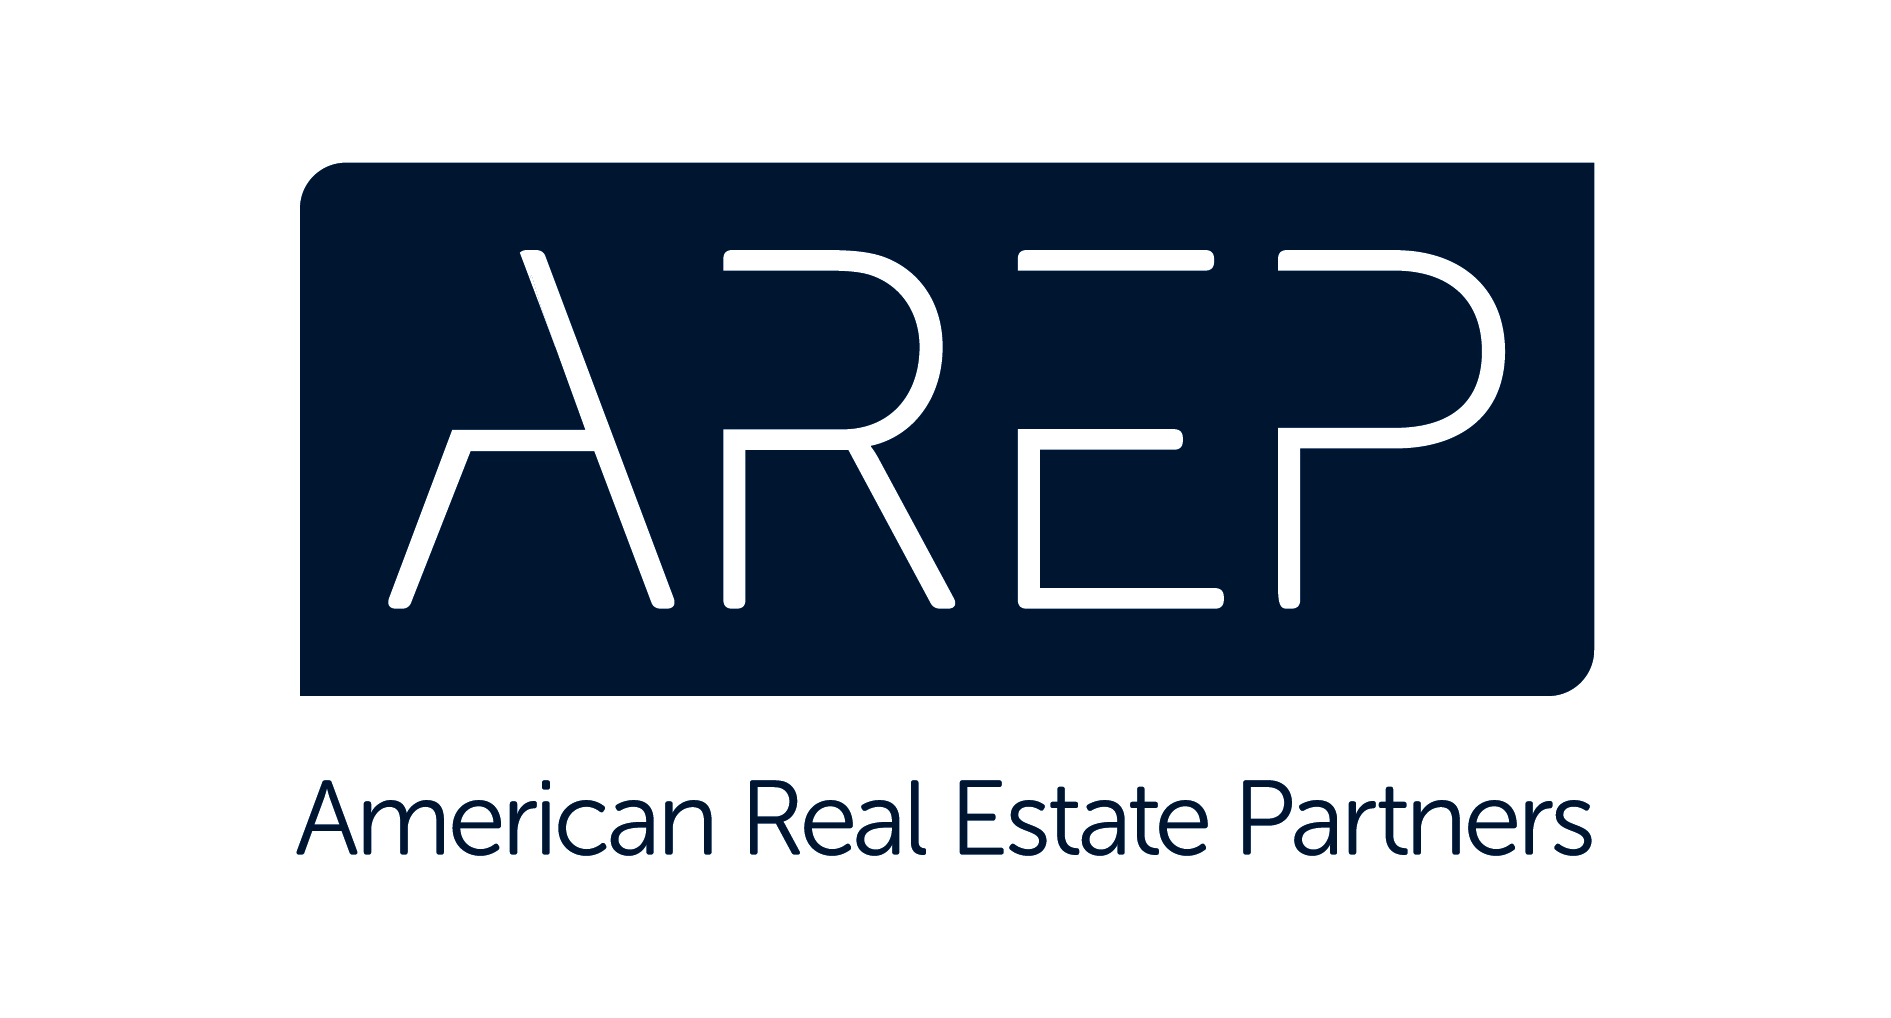 American Real Estate Partners (AREP)